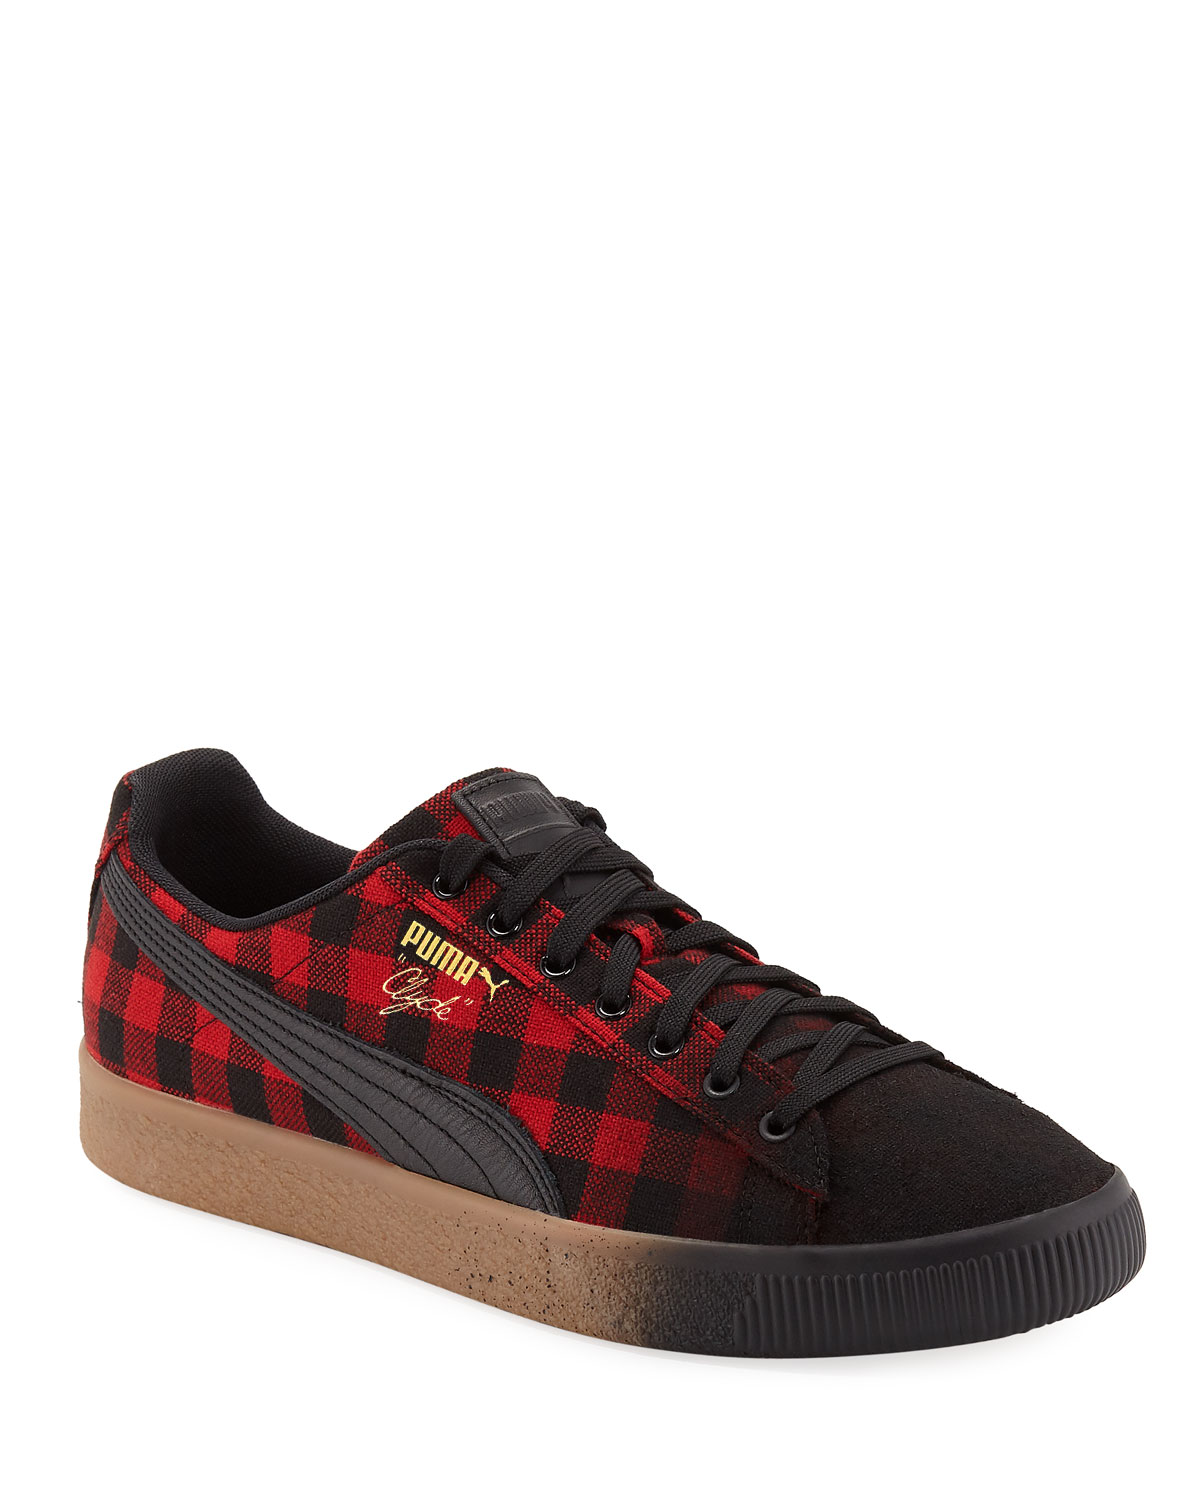 44a7f1c9f4 Men's Clyde Buffalo Check Platform Low-Top Sneakers